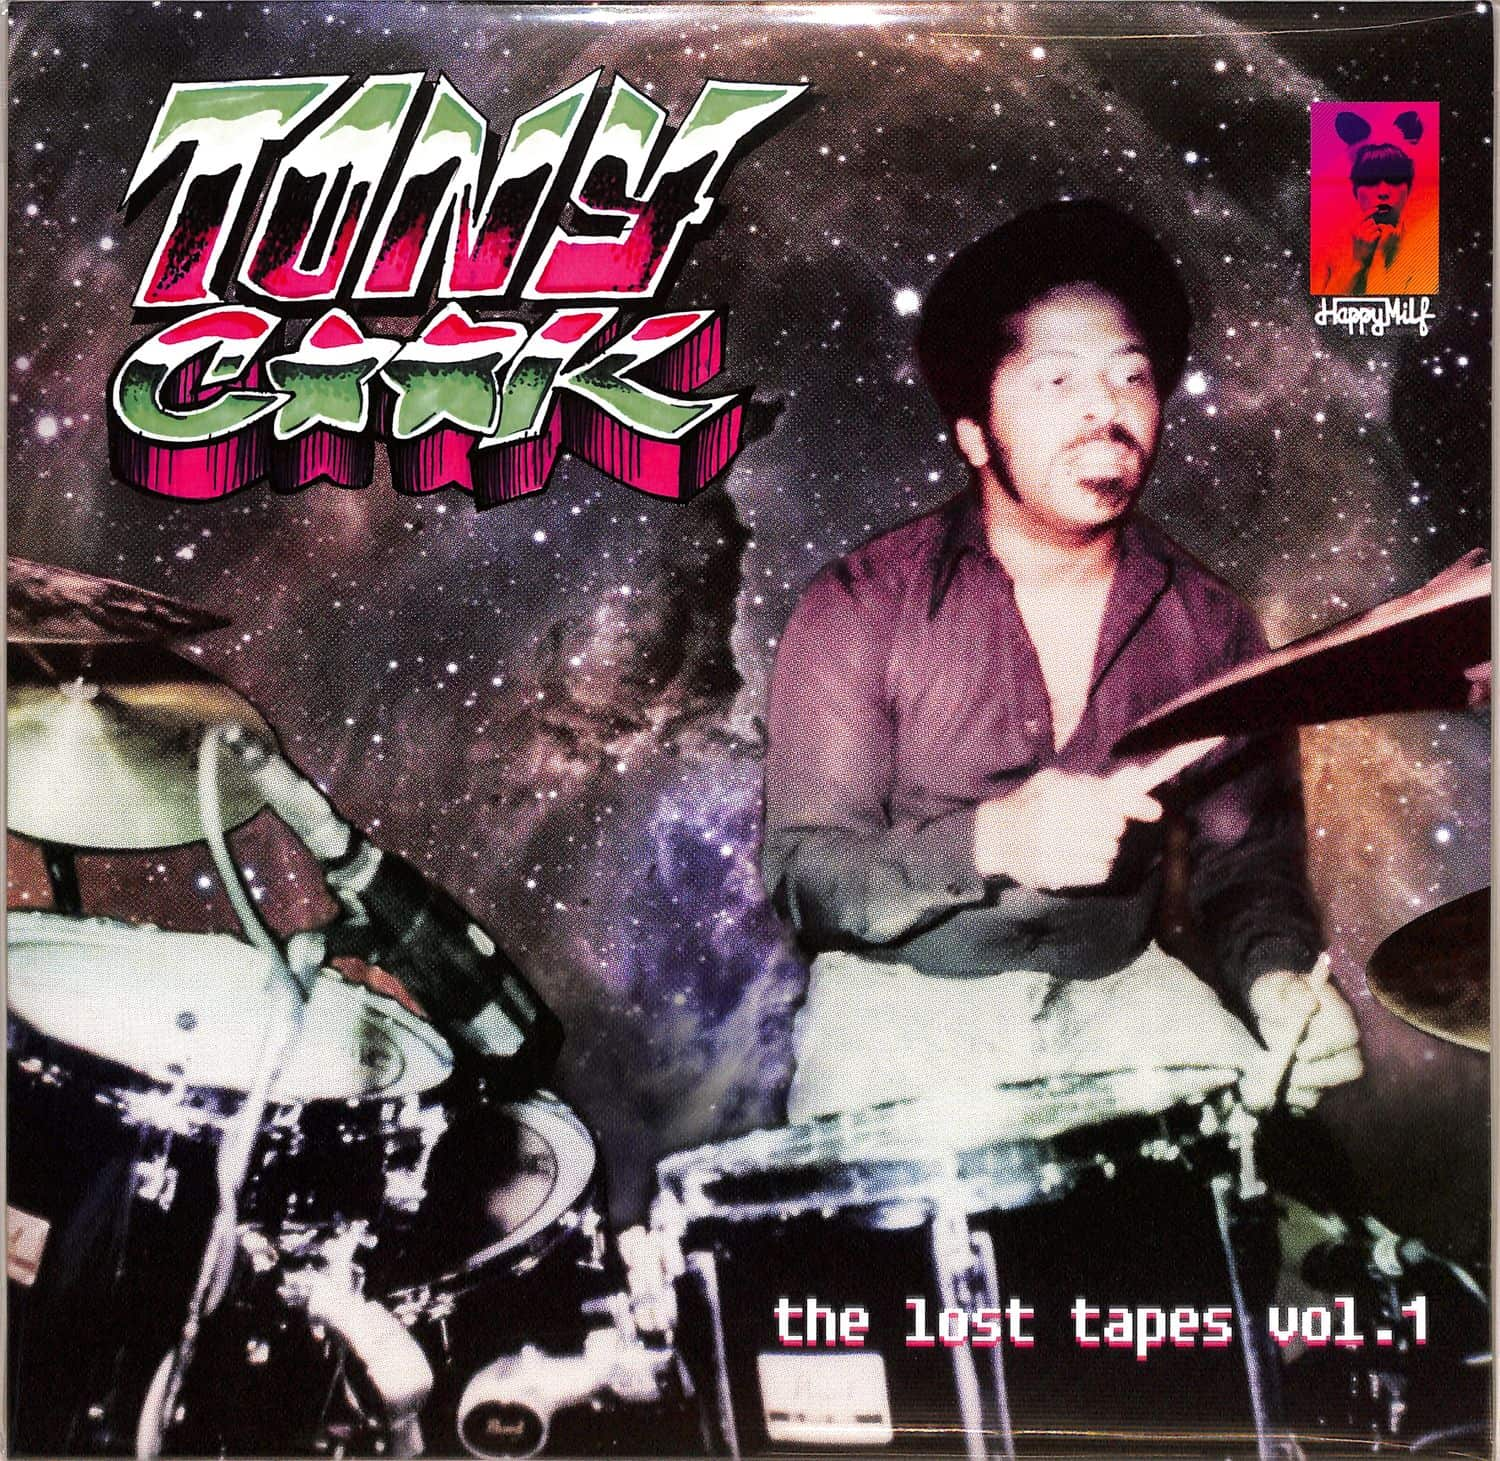 Tony Cook - THE LOST TAPES VOL. 1